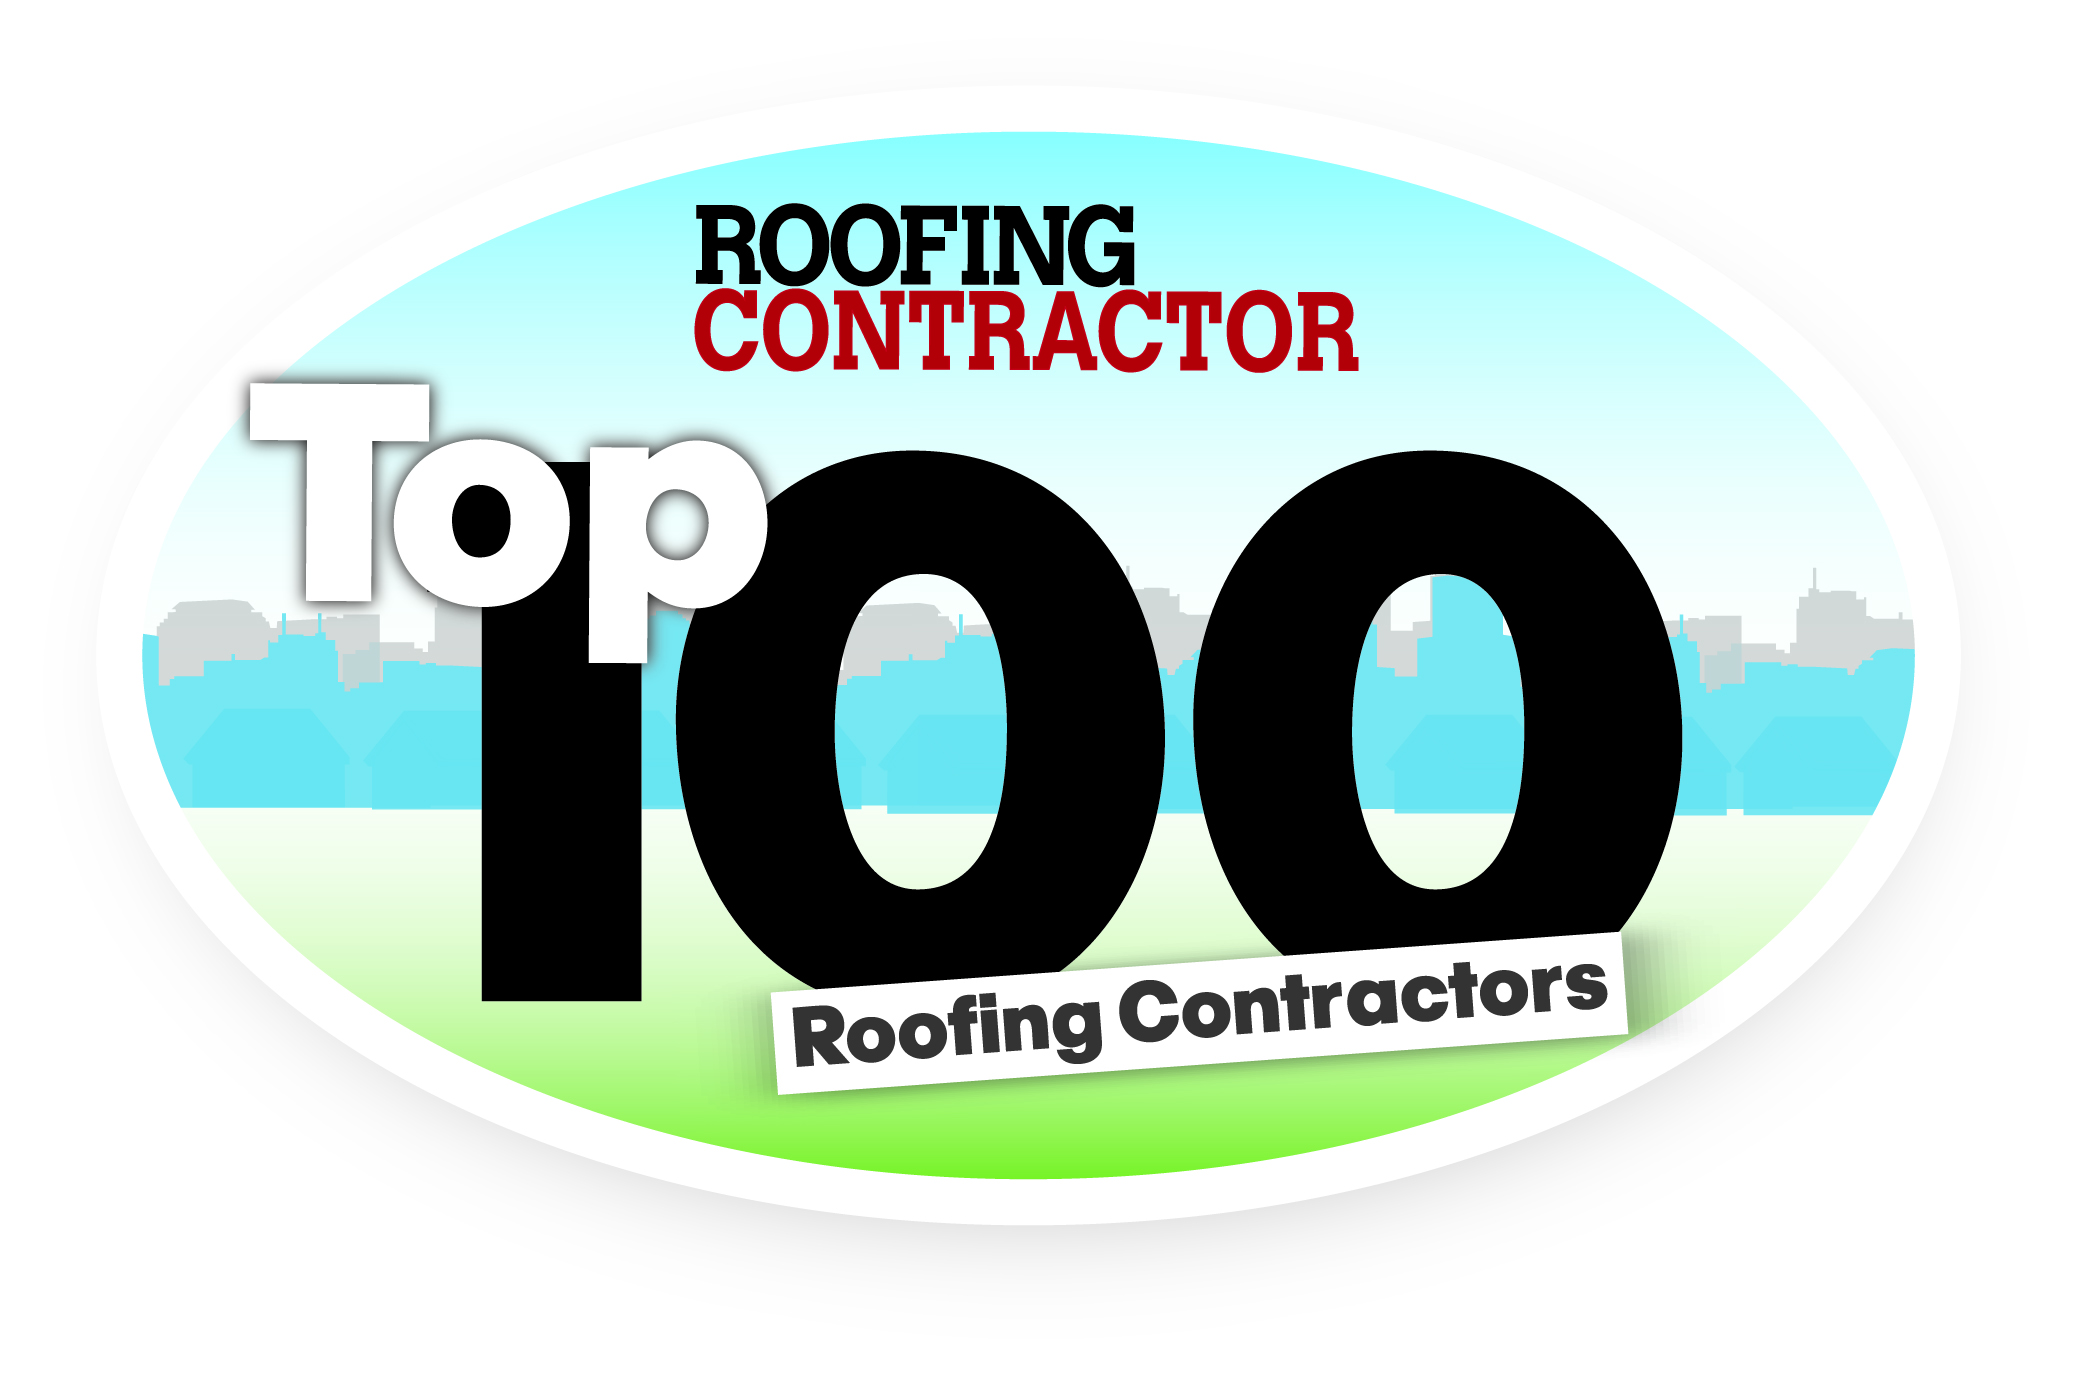 Venture Construction Group of Florida Ranks #22 on Roofing Contractor Magazine's Top 100